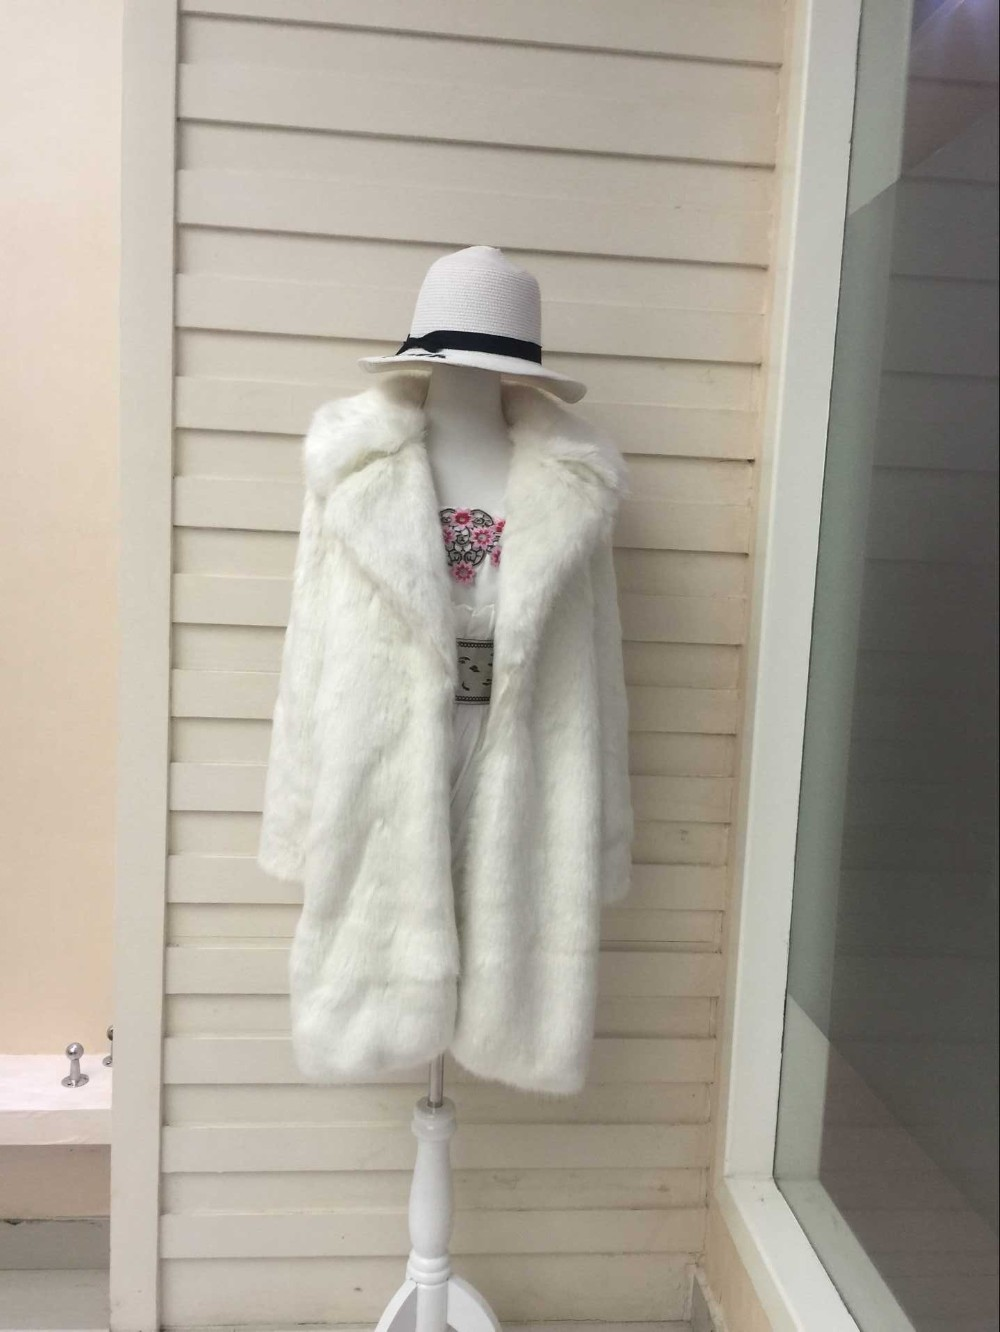 Renard Blanc Imitation Fille Fourrure Manteau Mode 2018 rose Nouvelle Long tpUwq8